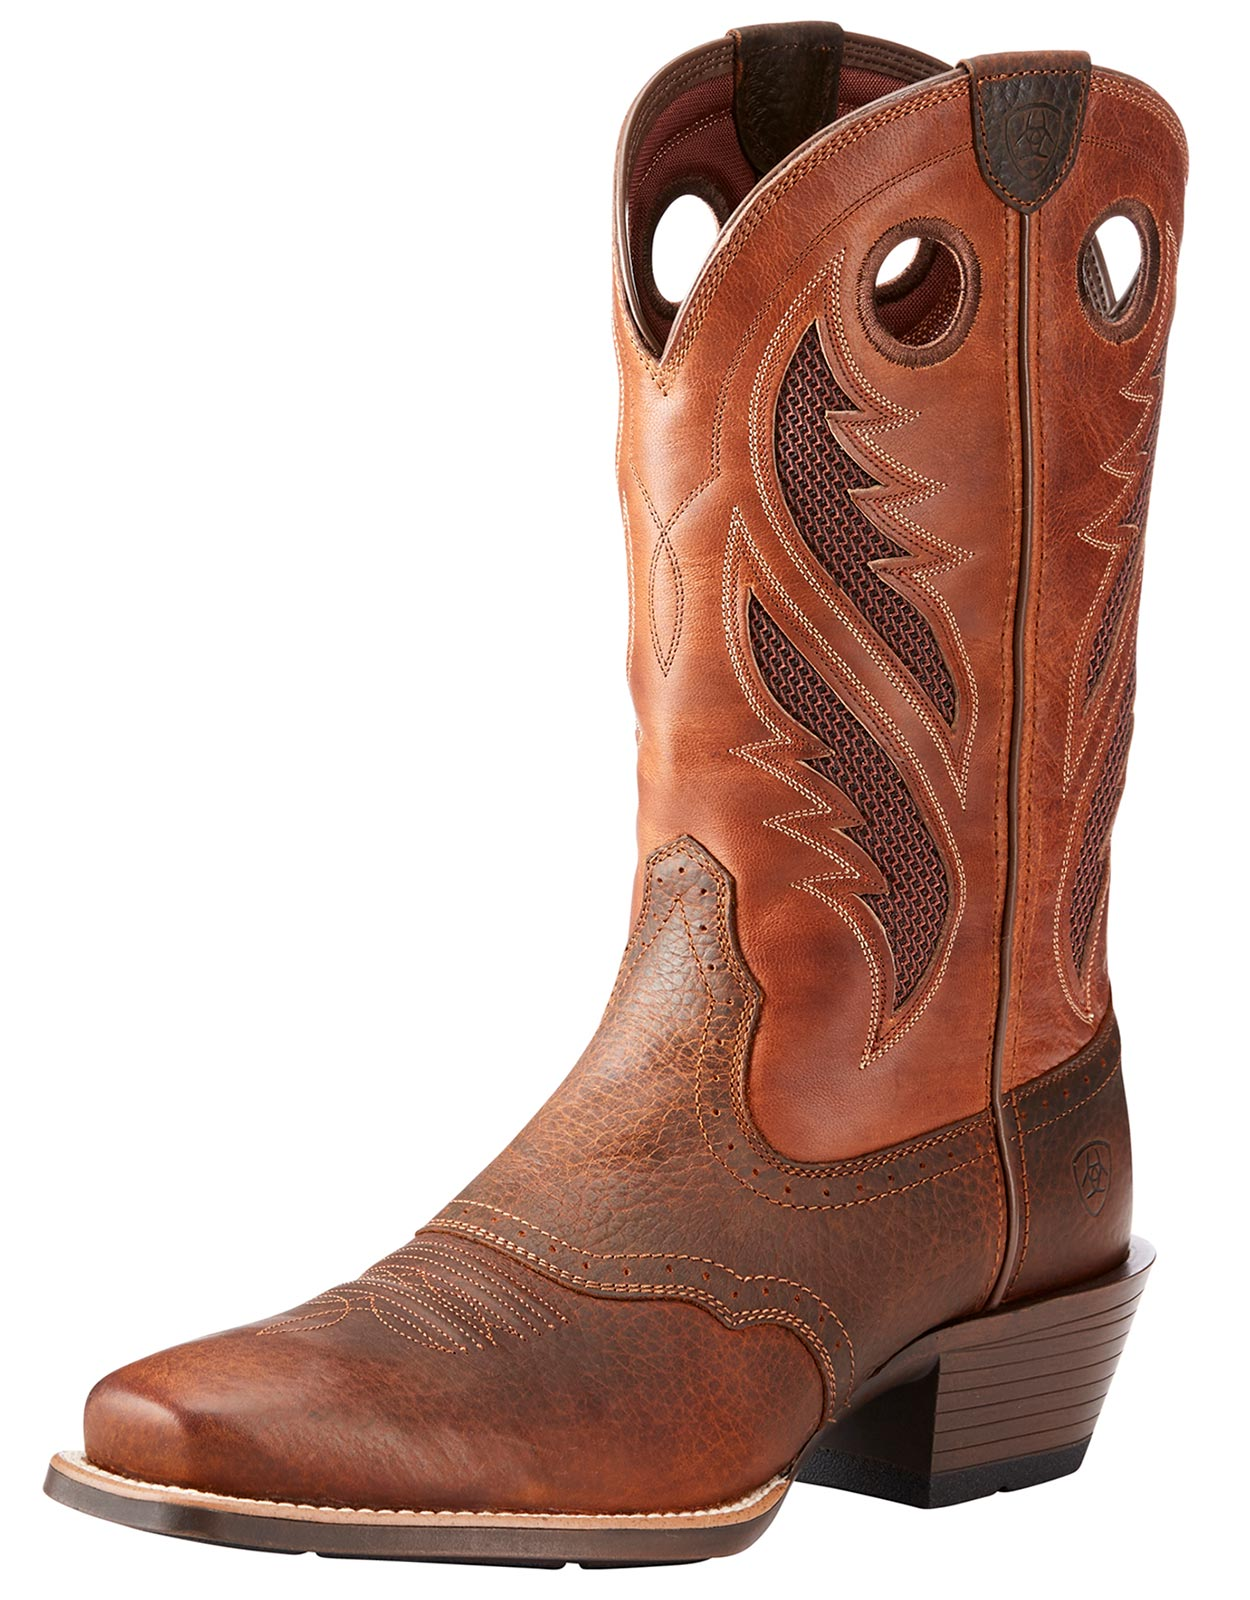 Ariat Men's Venttek Ultra 11